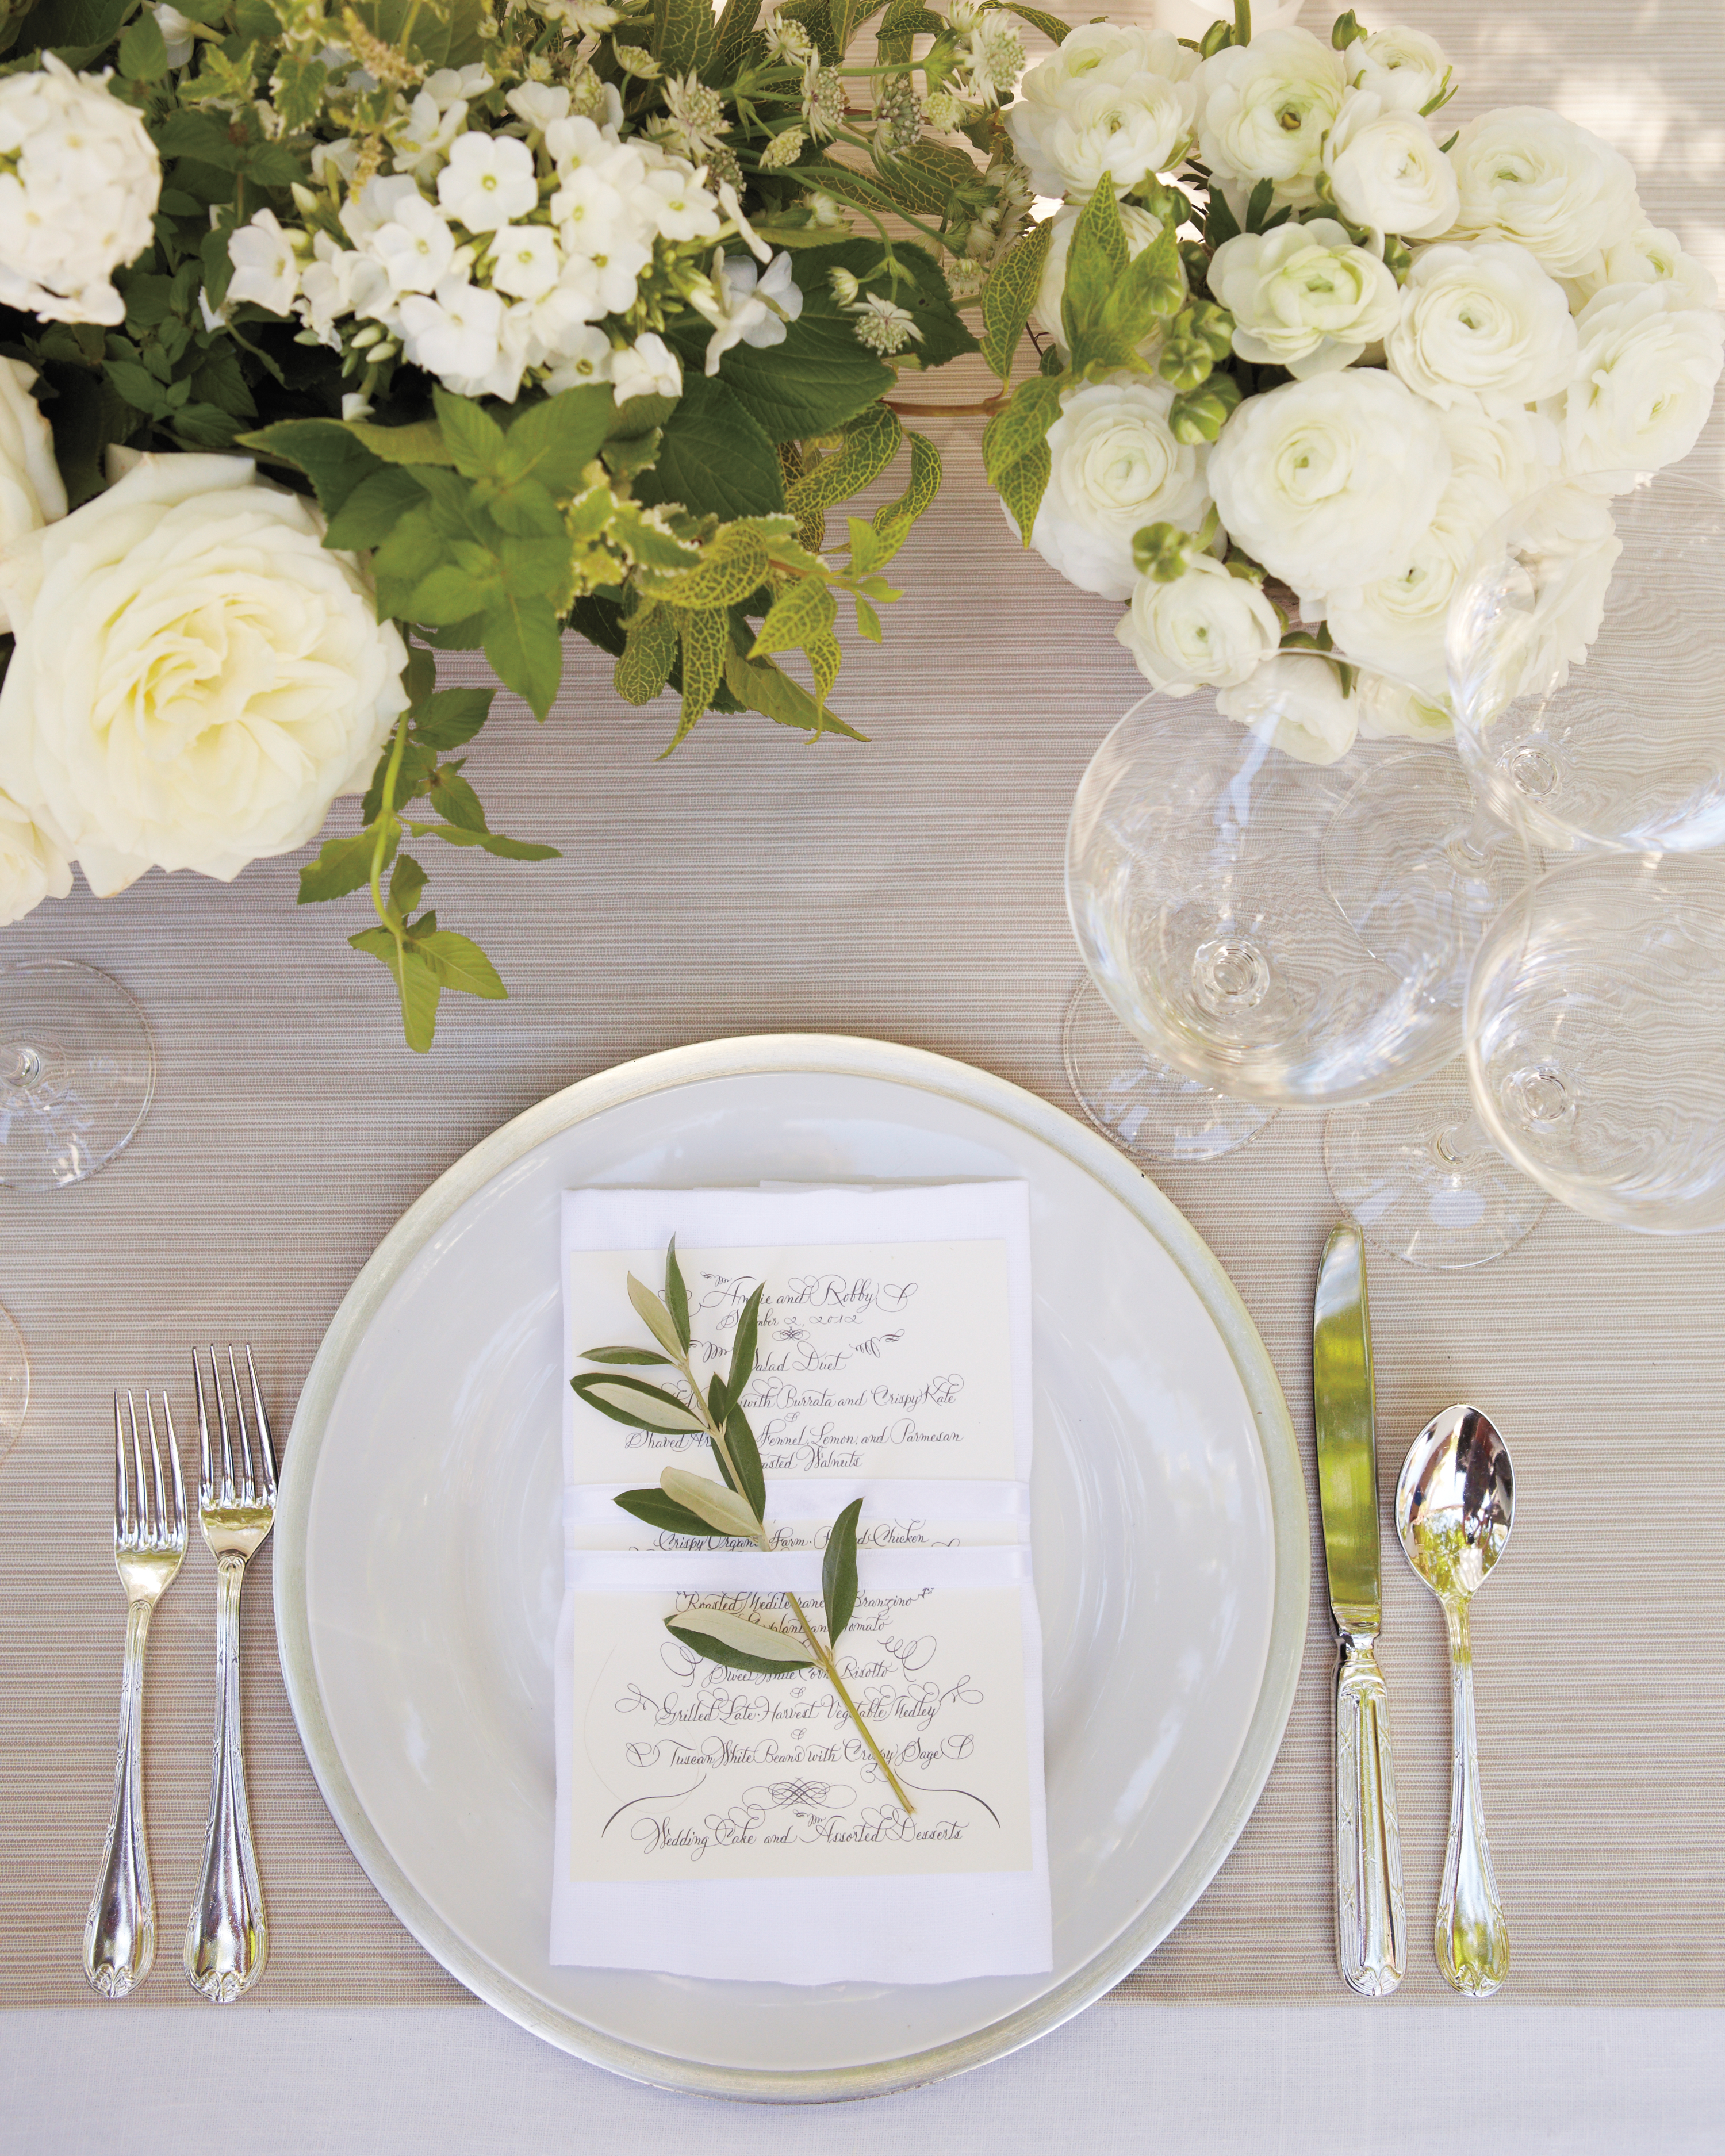 table-setting-mwd109296.jpg